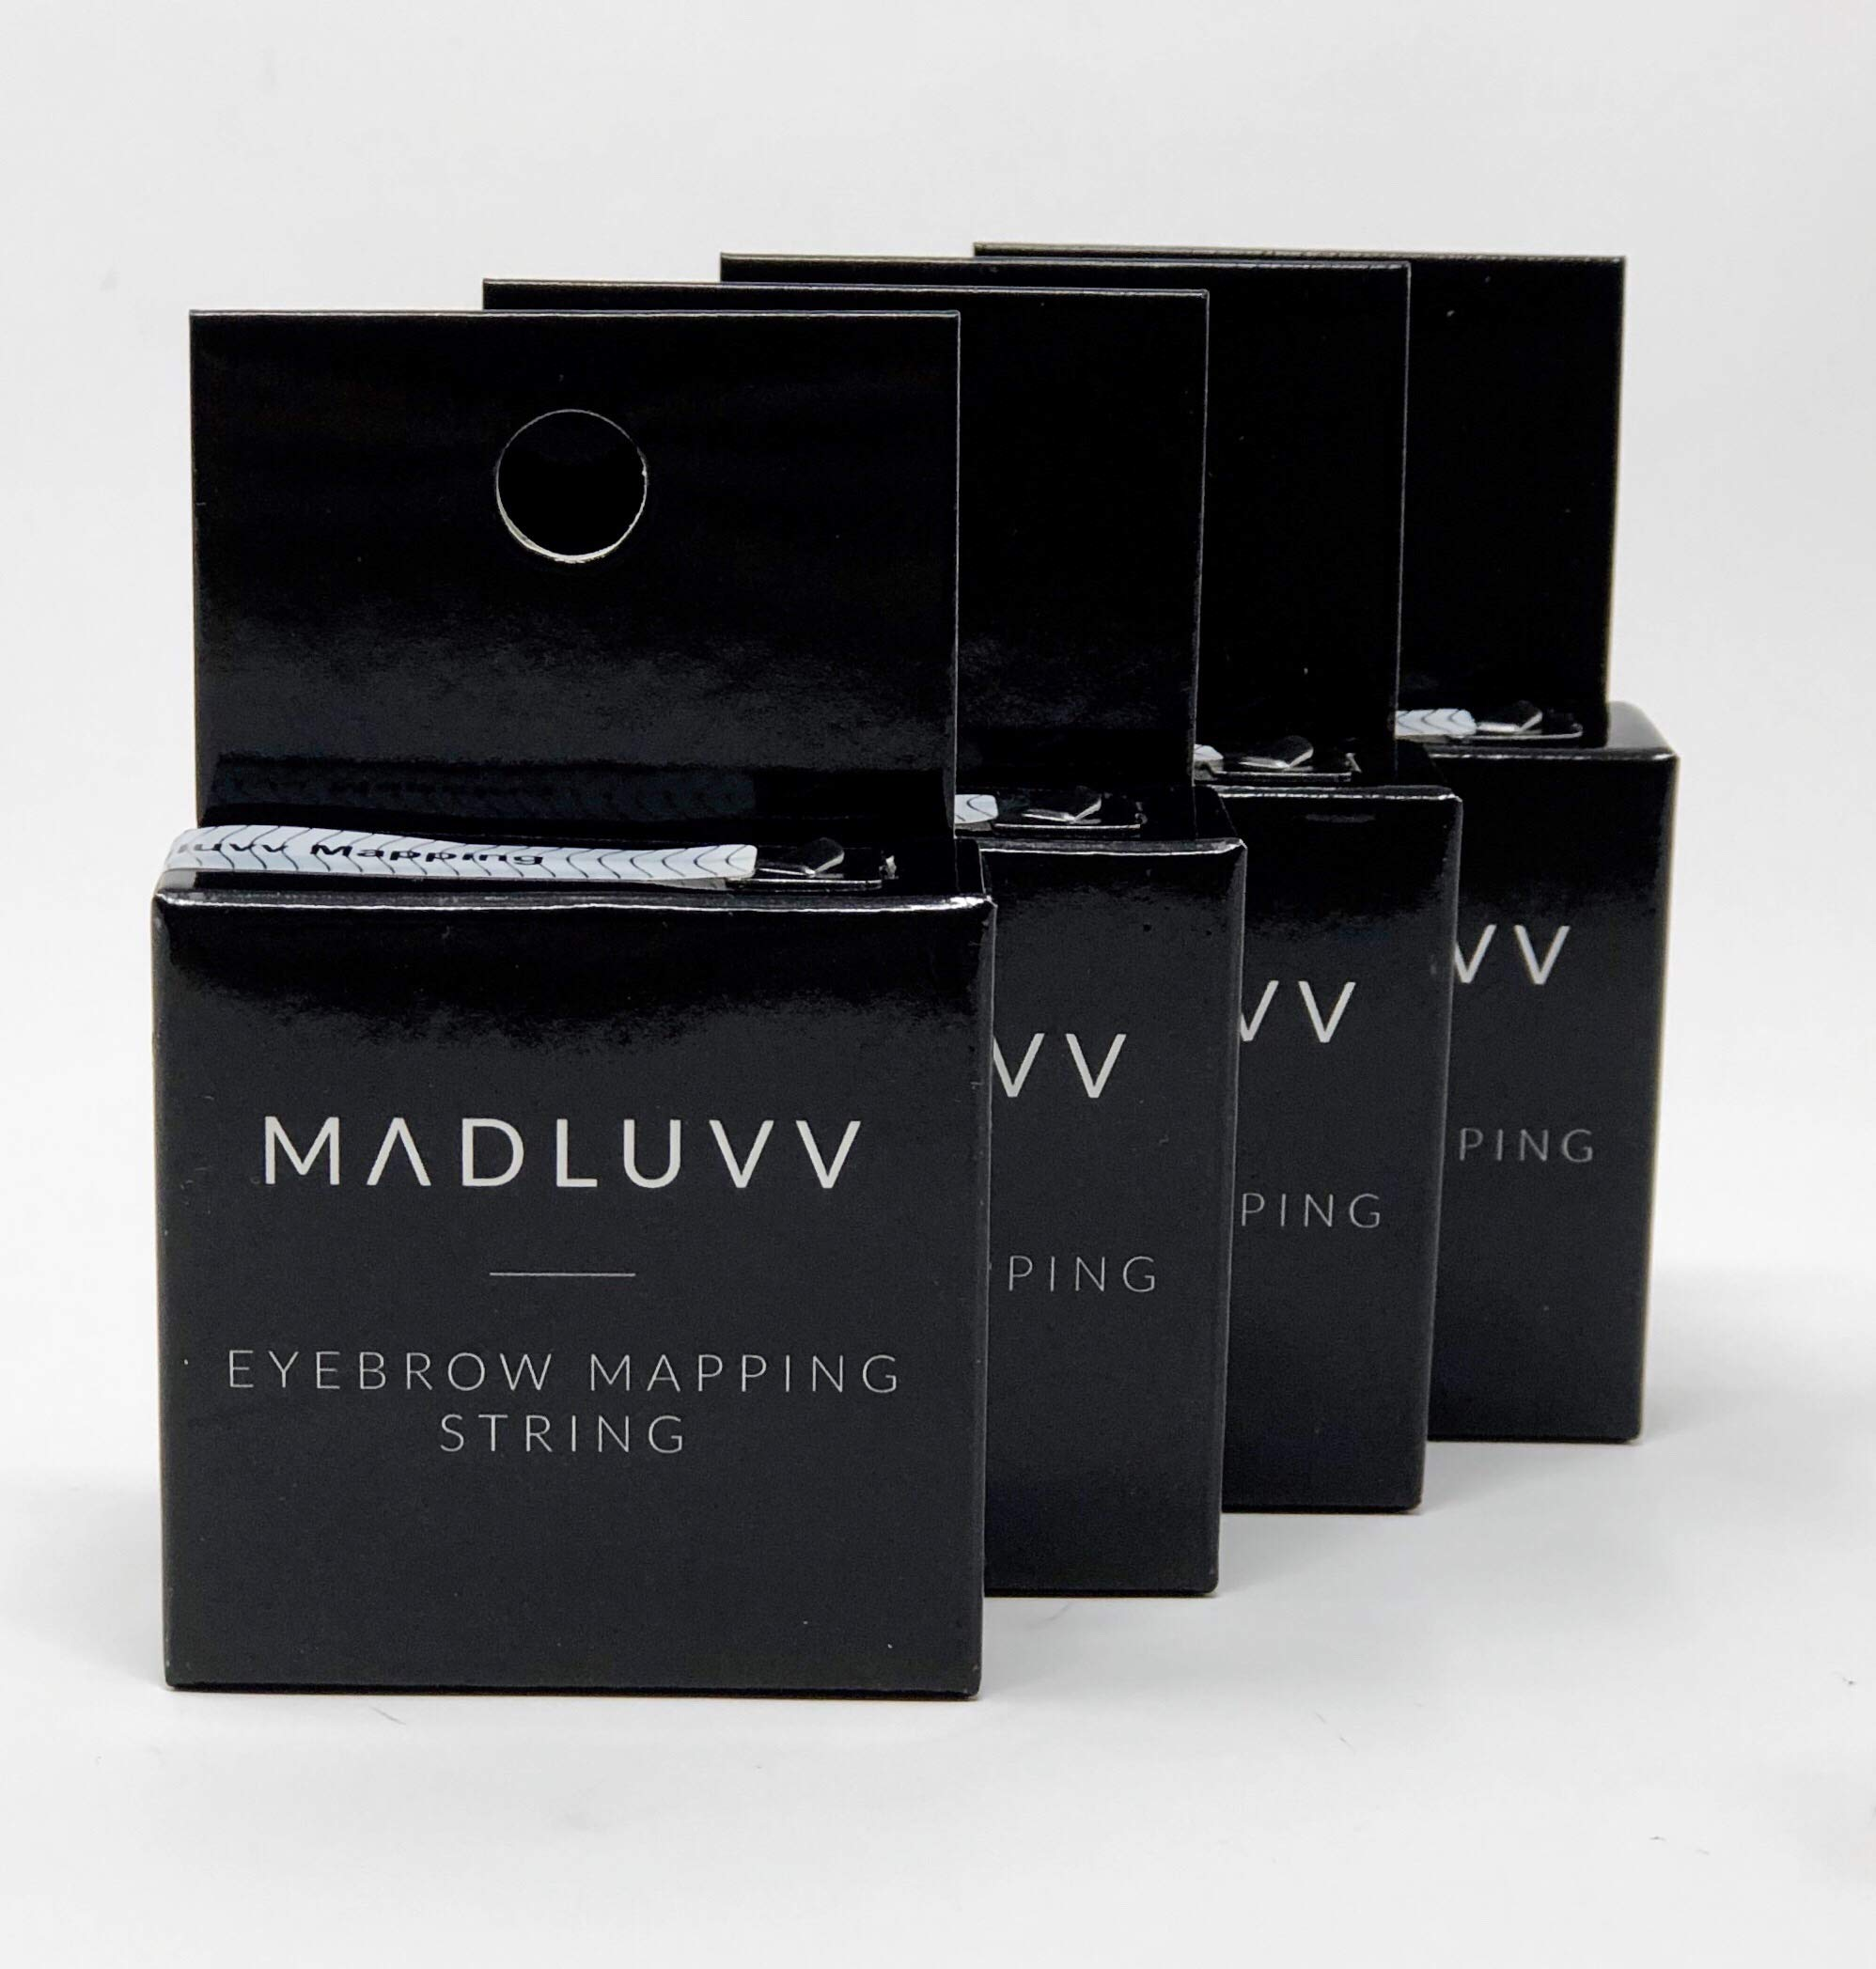 Best Brow Mapping Pre- Inked String For Microblading (4 Pack)